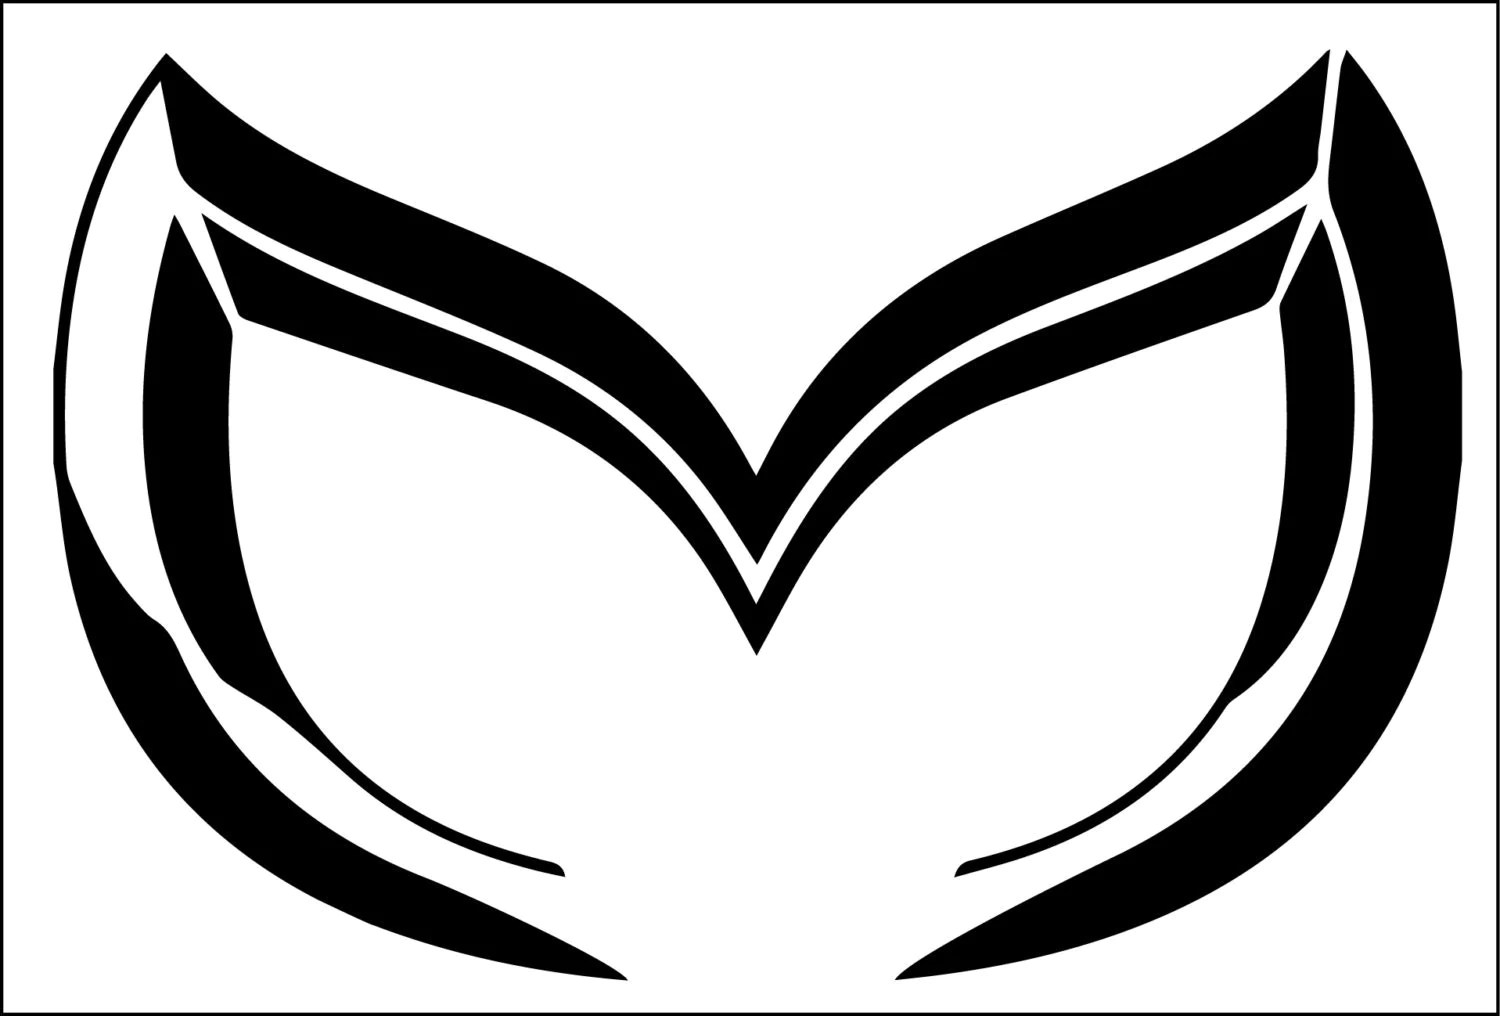 Mazda Evil M Outline Sticker Decal 6 Wide X 4